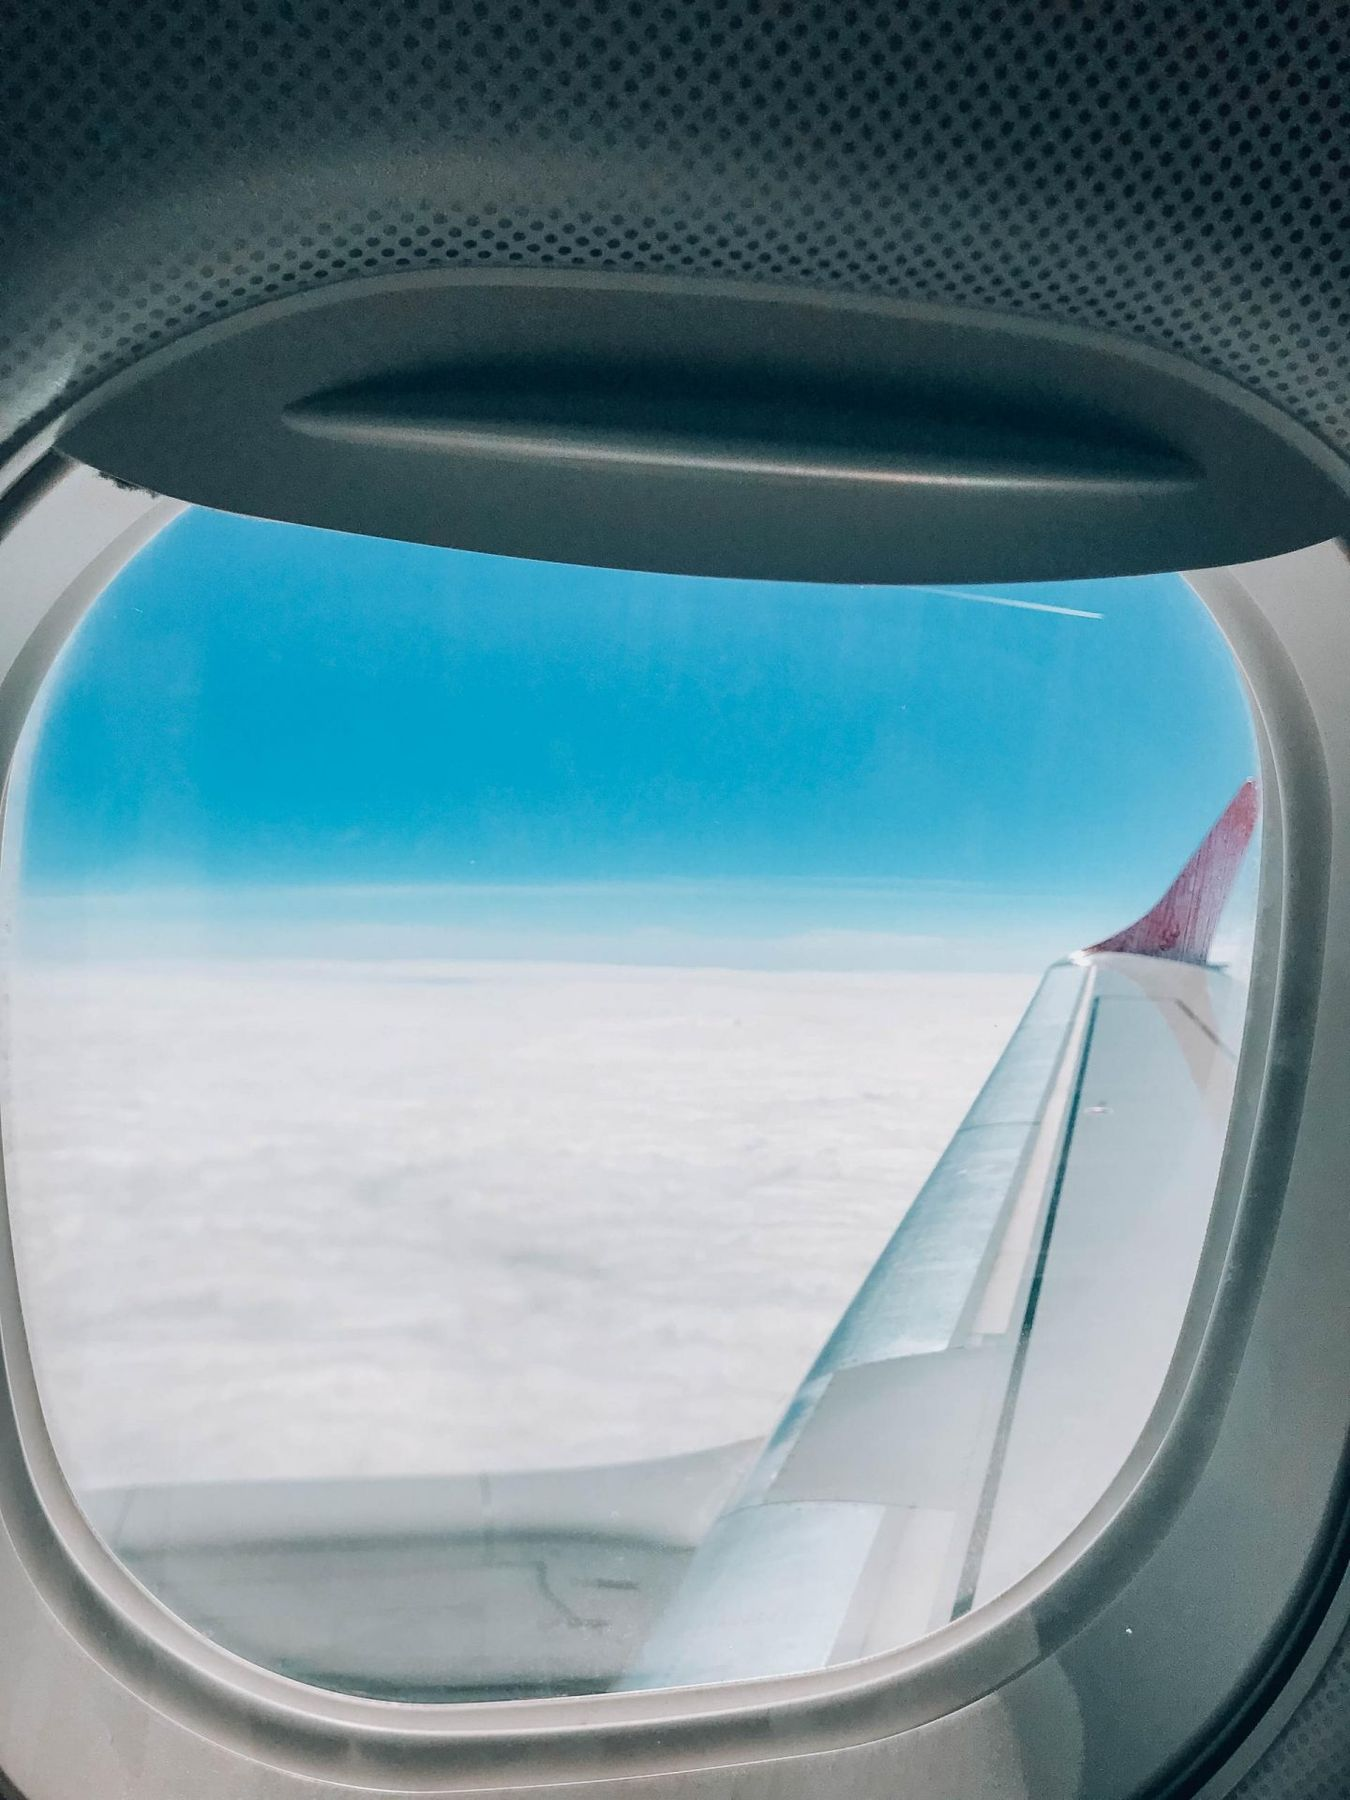 Airplane window, flying during covid-19 coronavirus